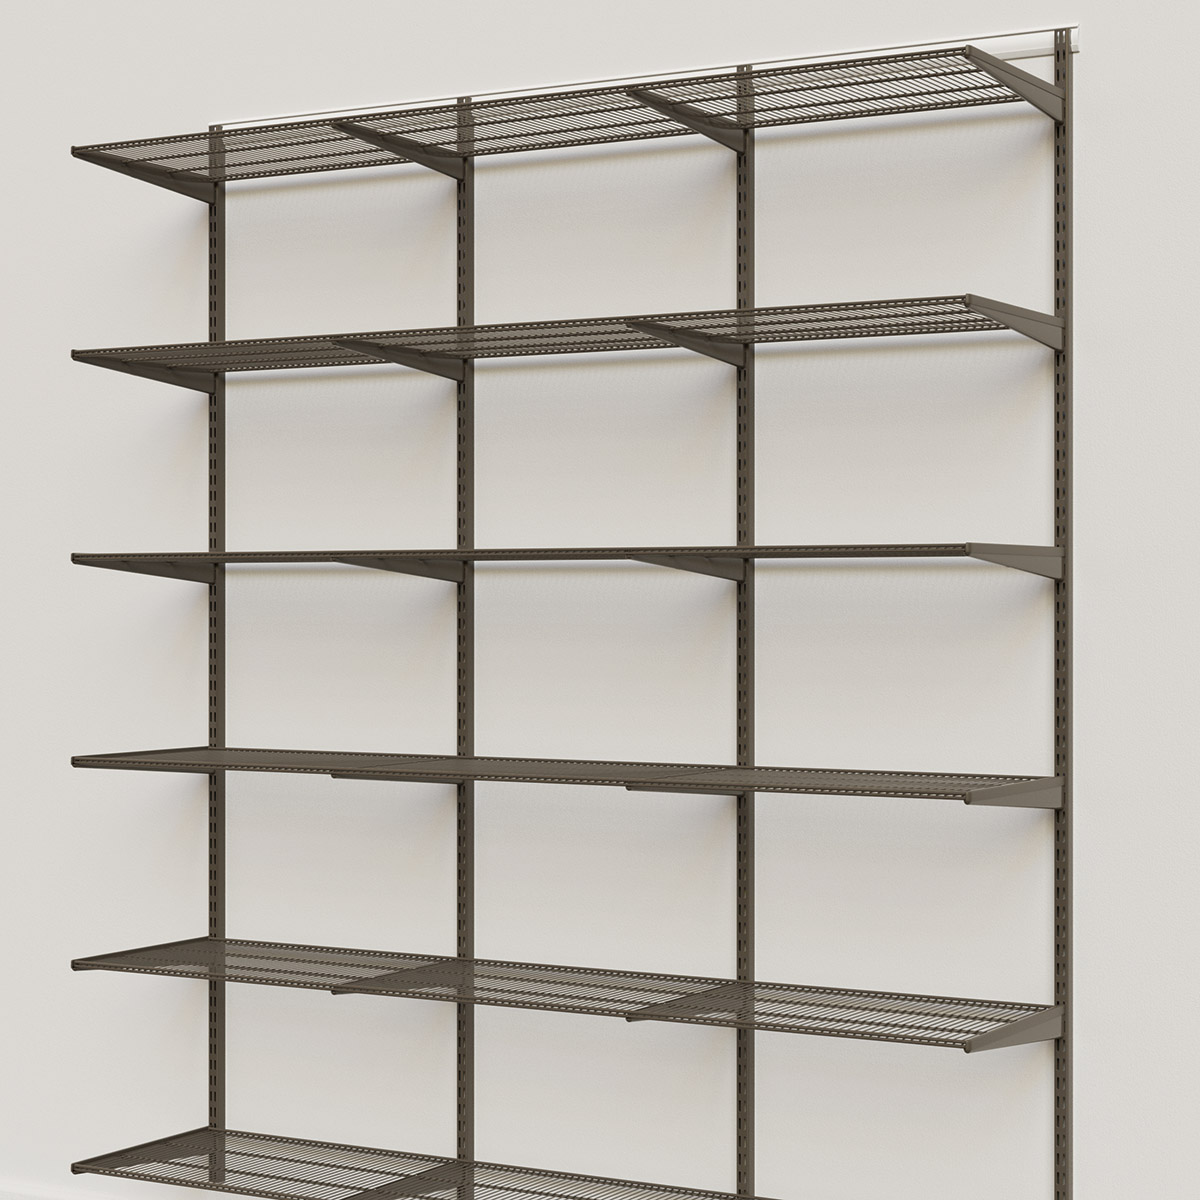 Elfa Classic Graphite 6' Basic Shelving Units for Anywhere